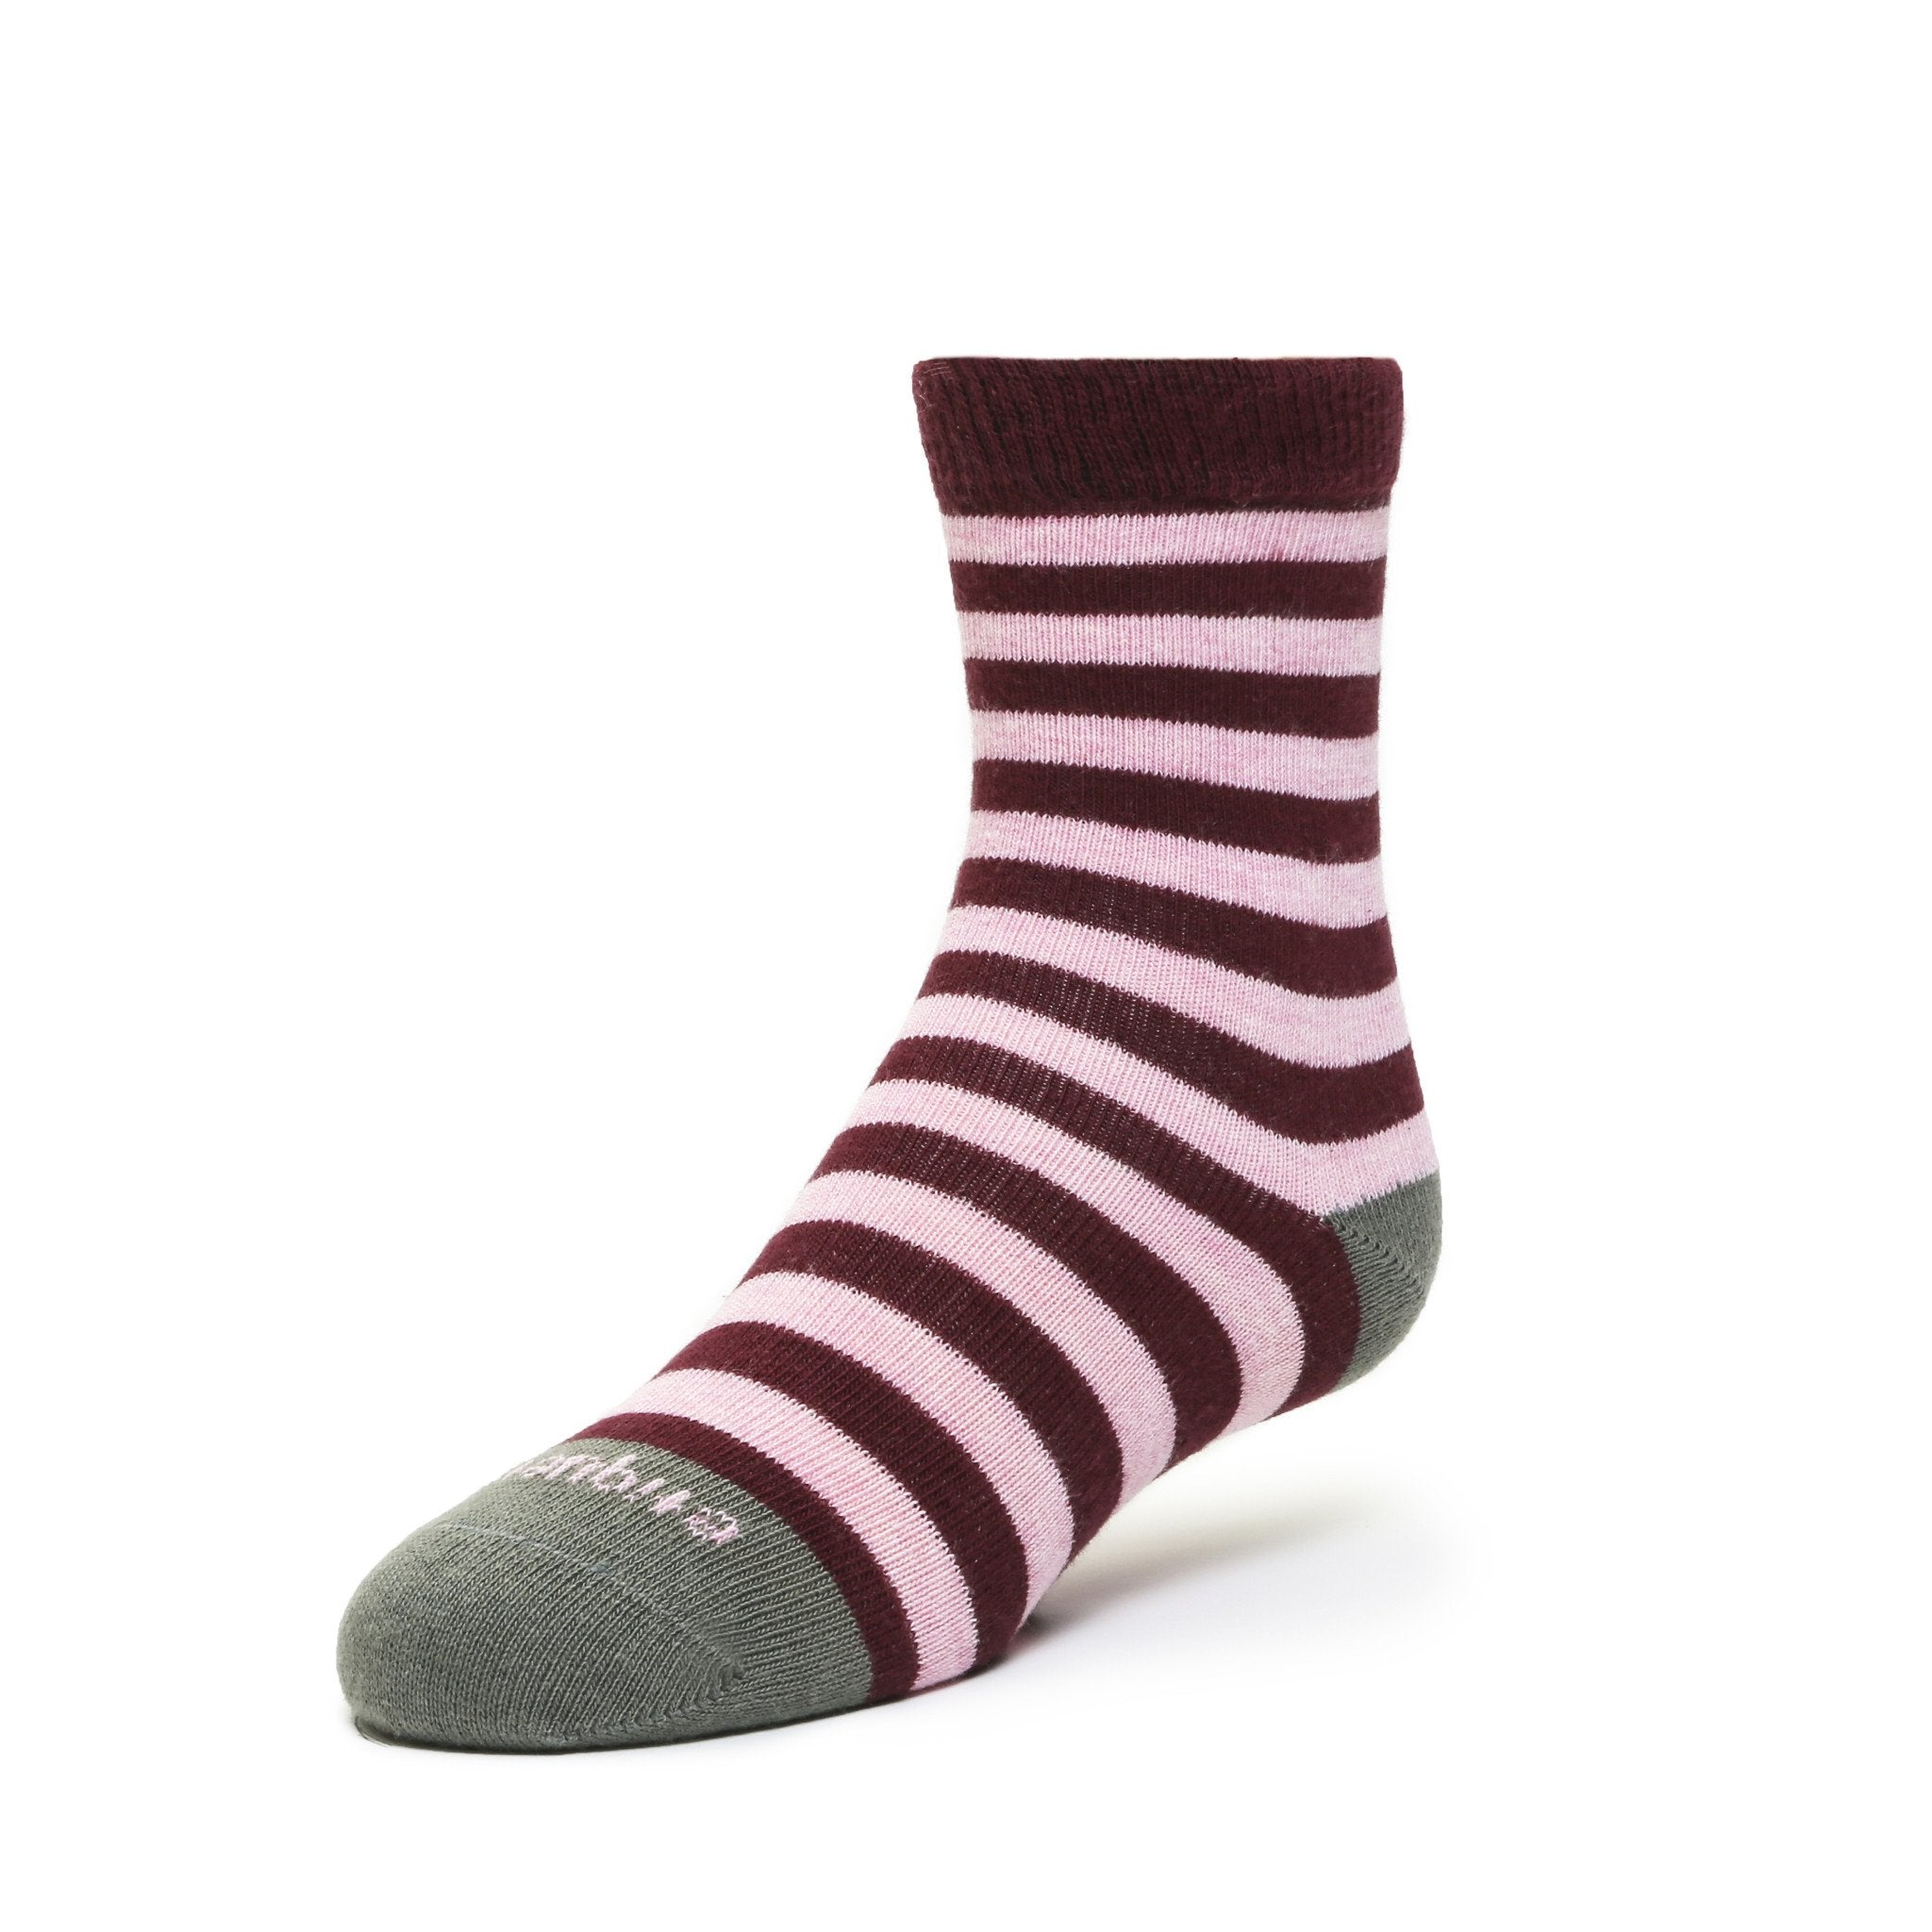 Kids Socks - Abbey Stripes - Pink Heather⎪Etiquette Clothiers